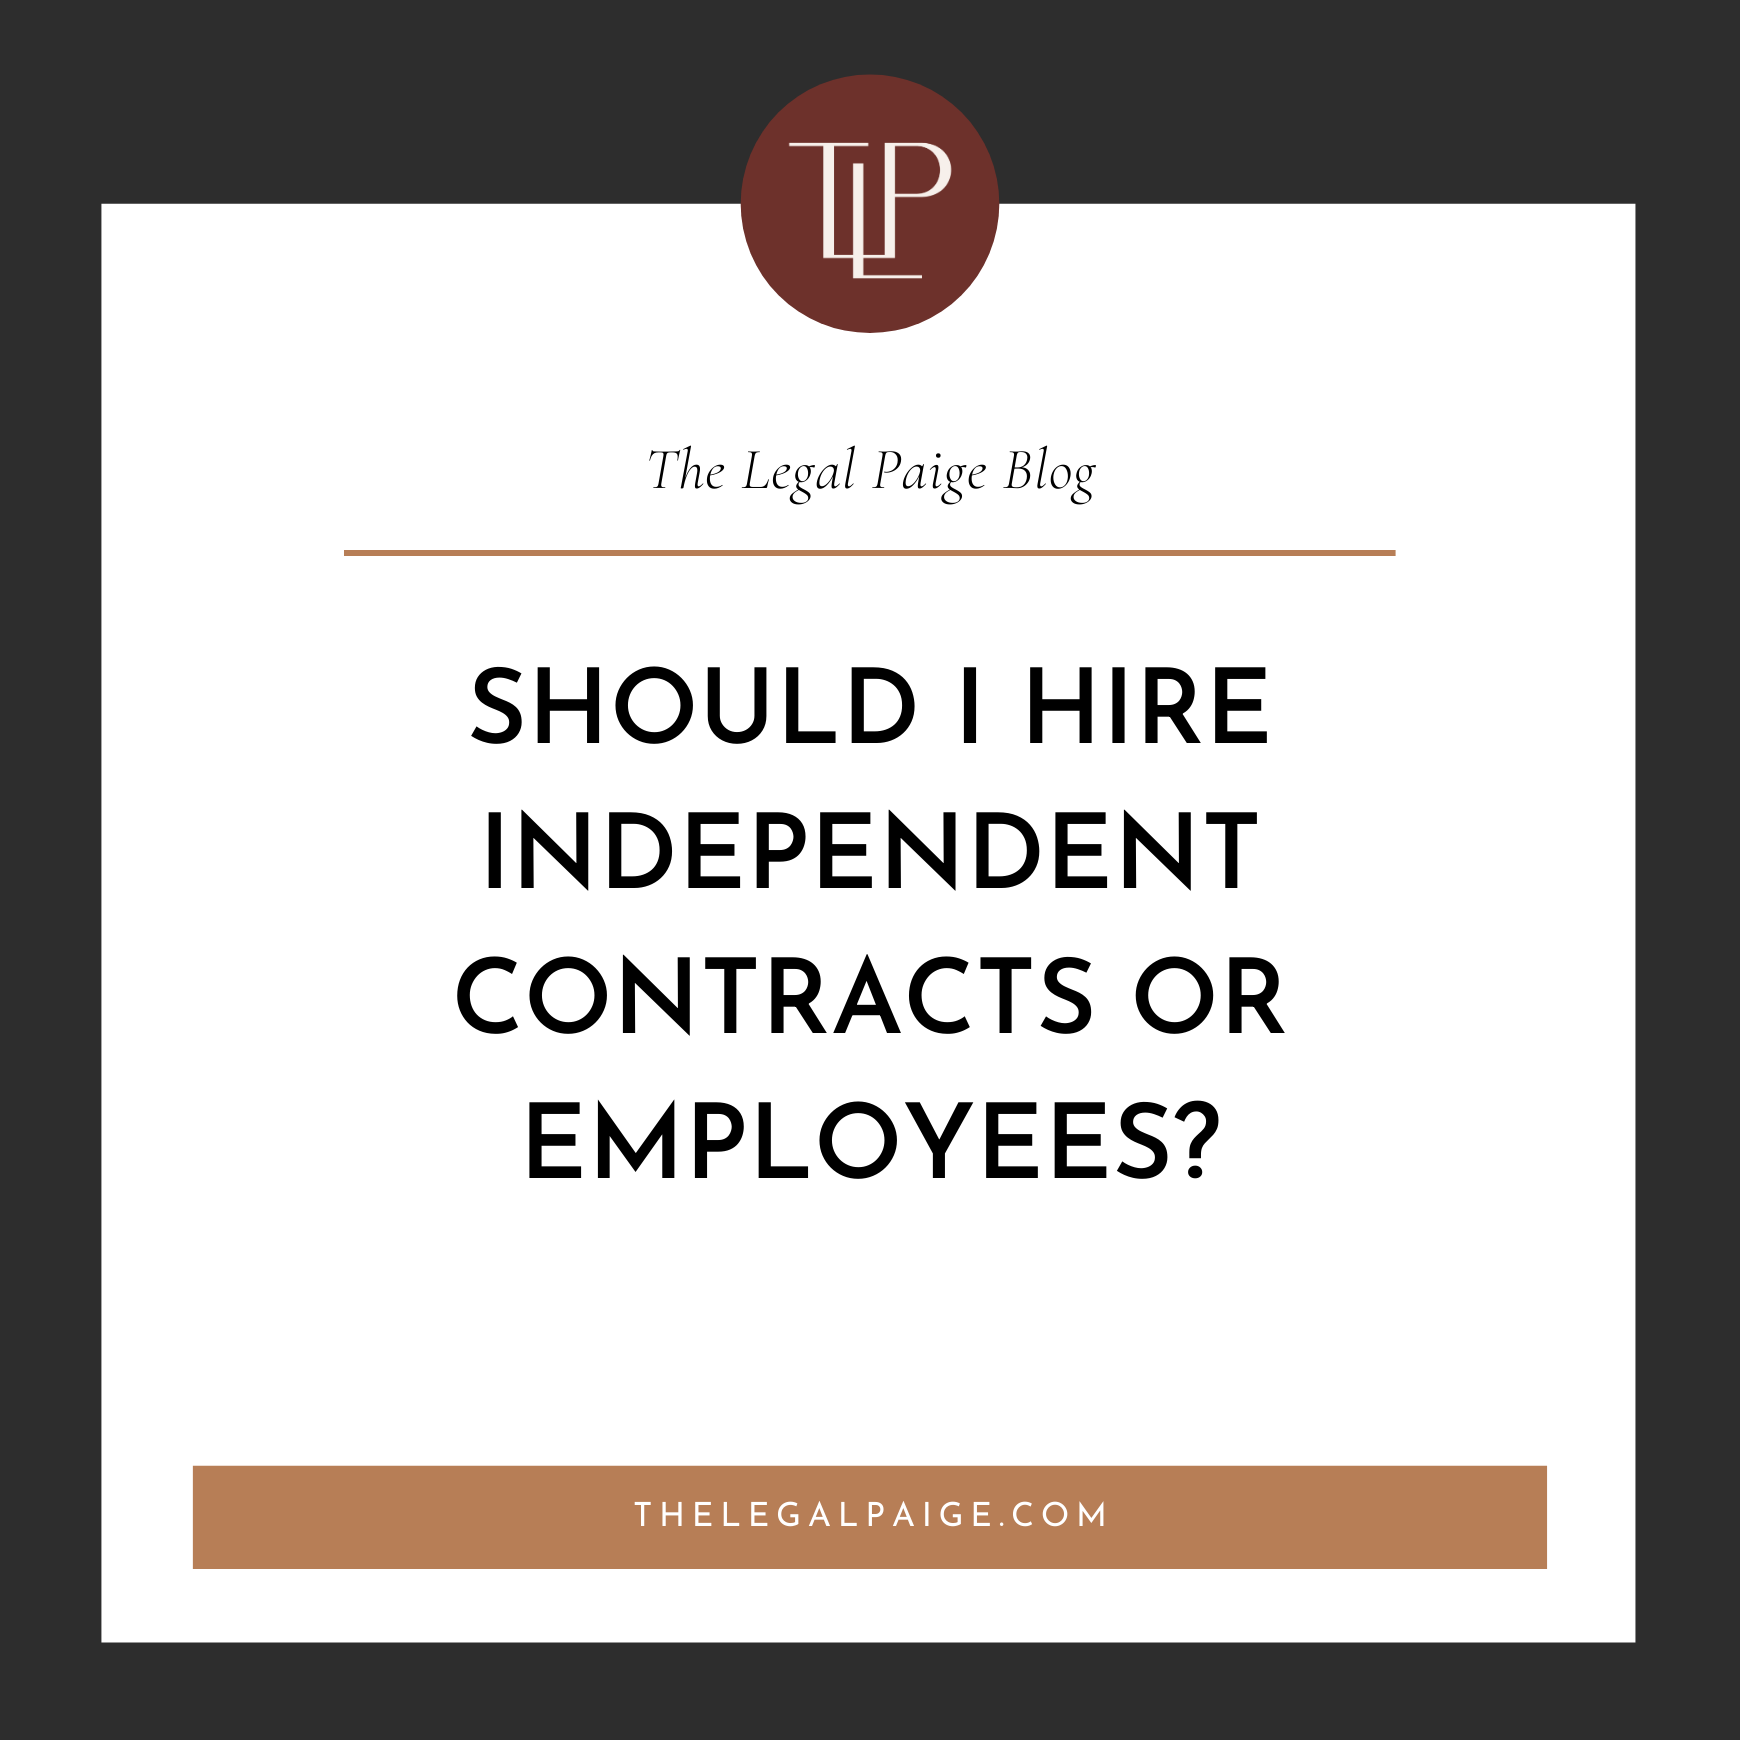 Differences between 1009 Contractors and Employees: How should I hire my help?